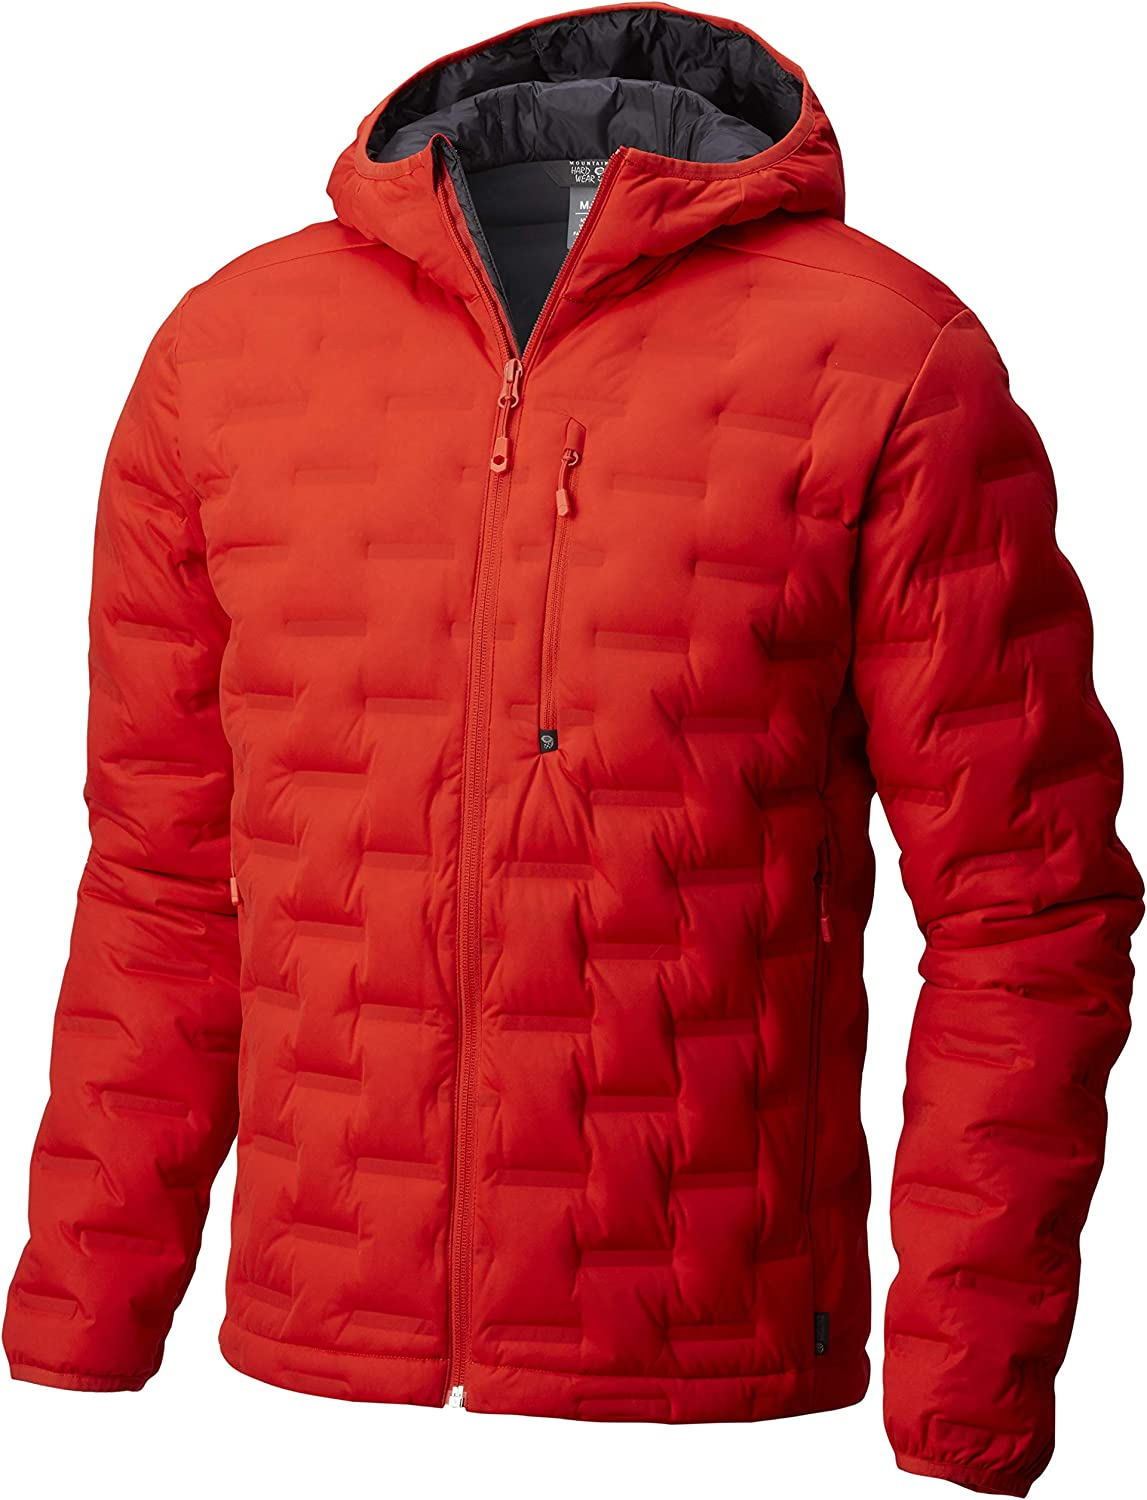 AW17 Mountain Hardwear StretchDown DS Hooded Jacket